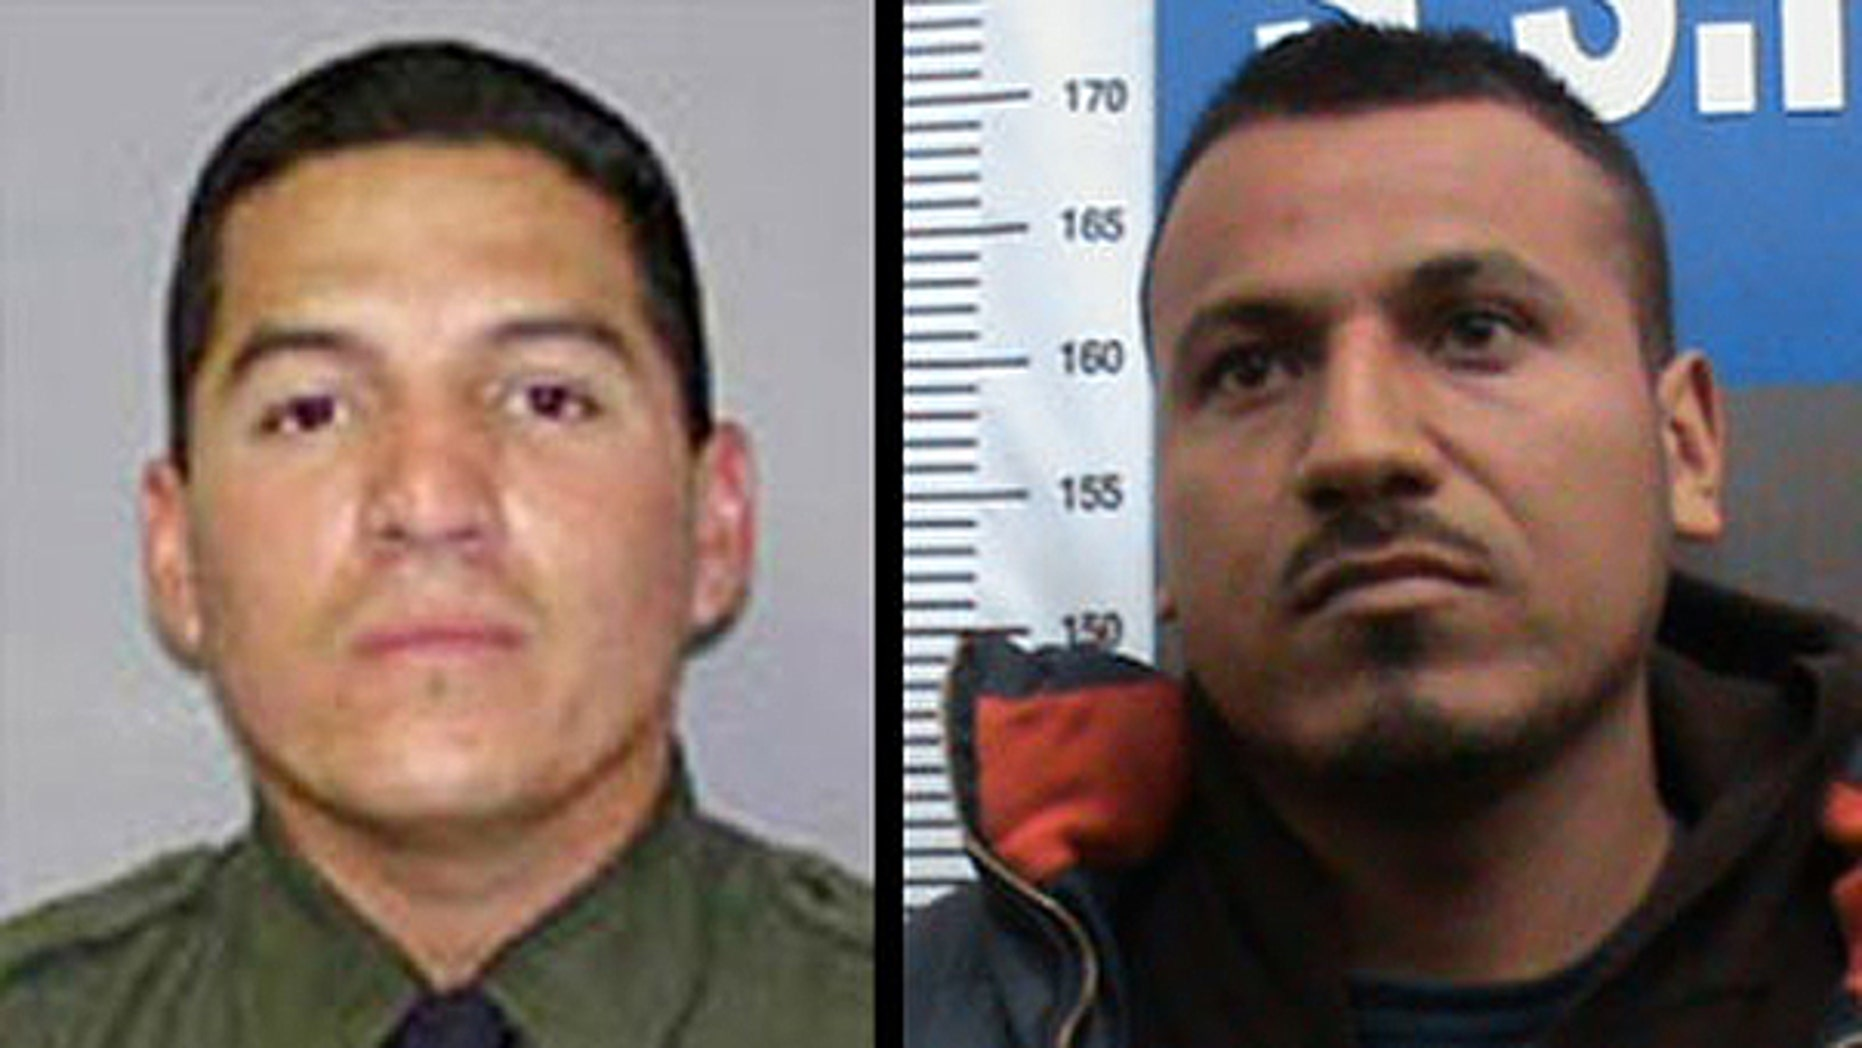 Border Agent Roberto Rosas (left) and Marcos Manuel Rodriguez Perez (right)